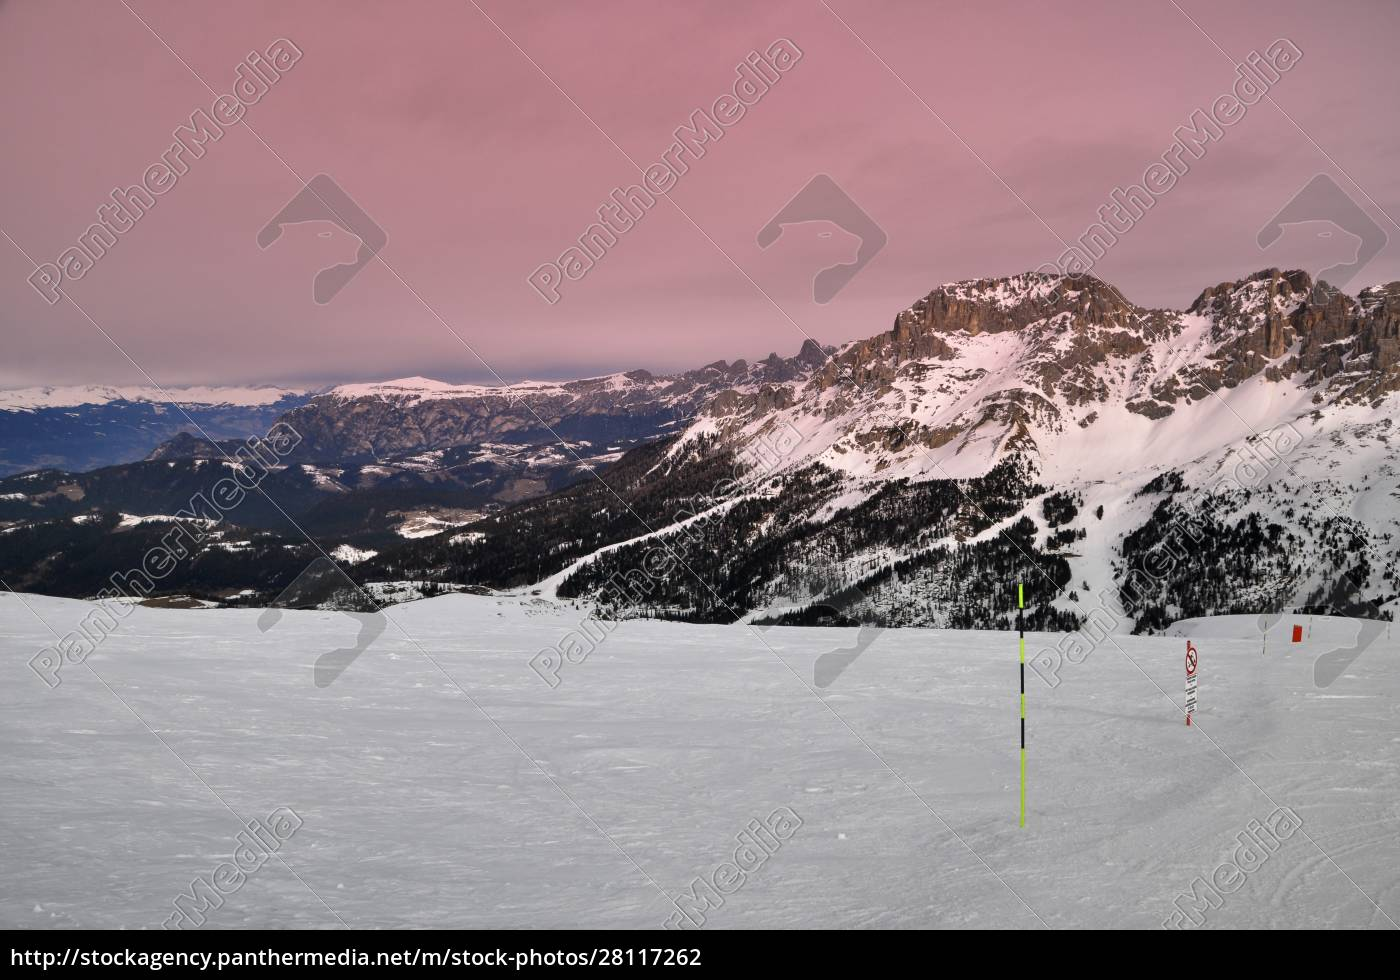 skiing, insouthern, tyrol - 28117262